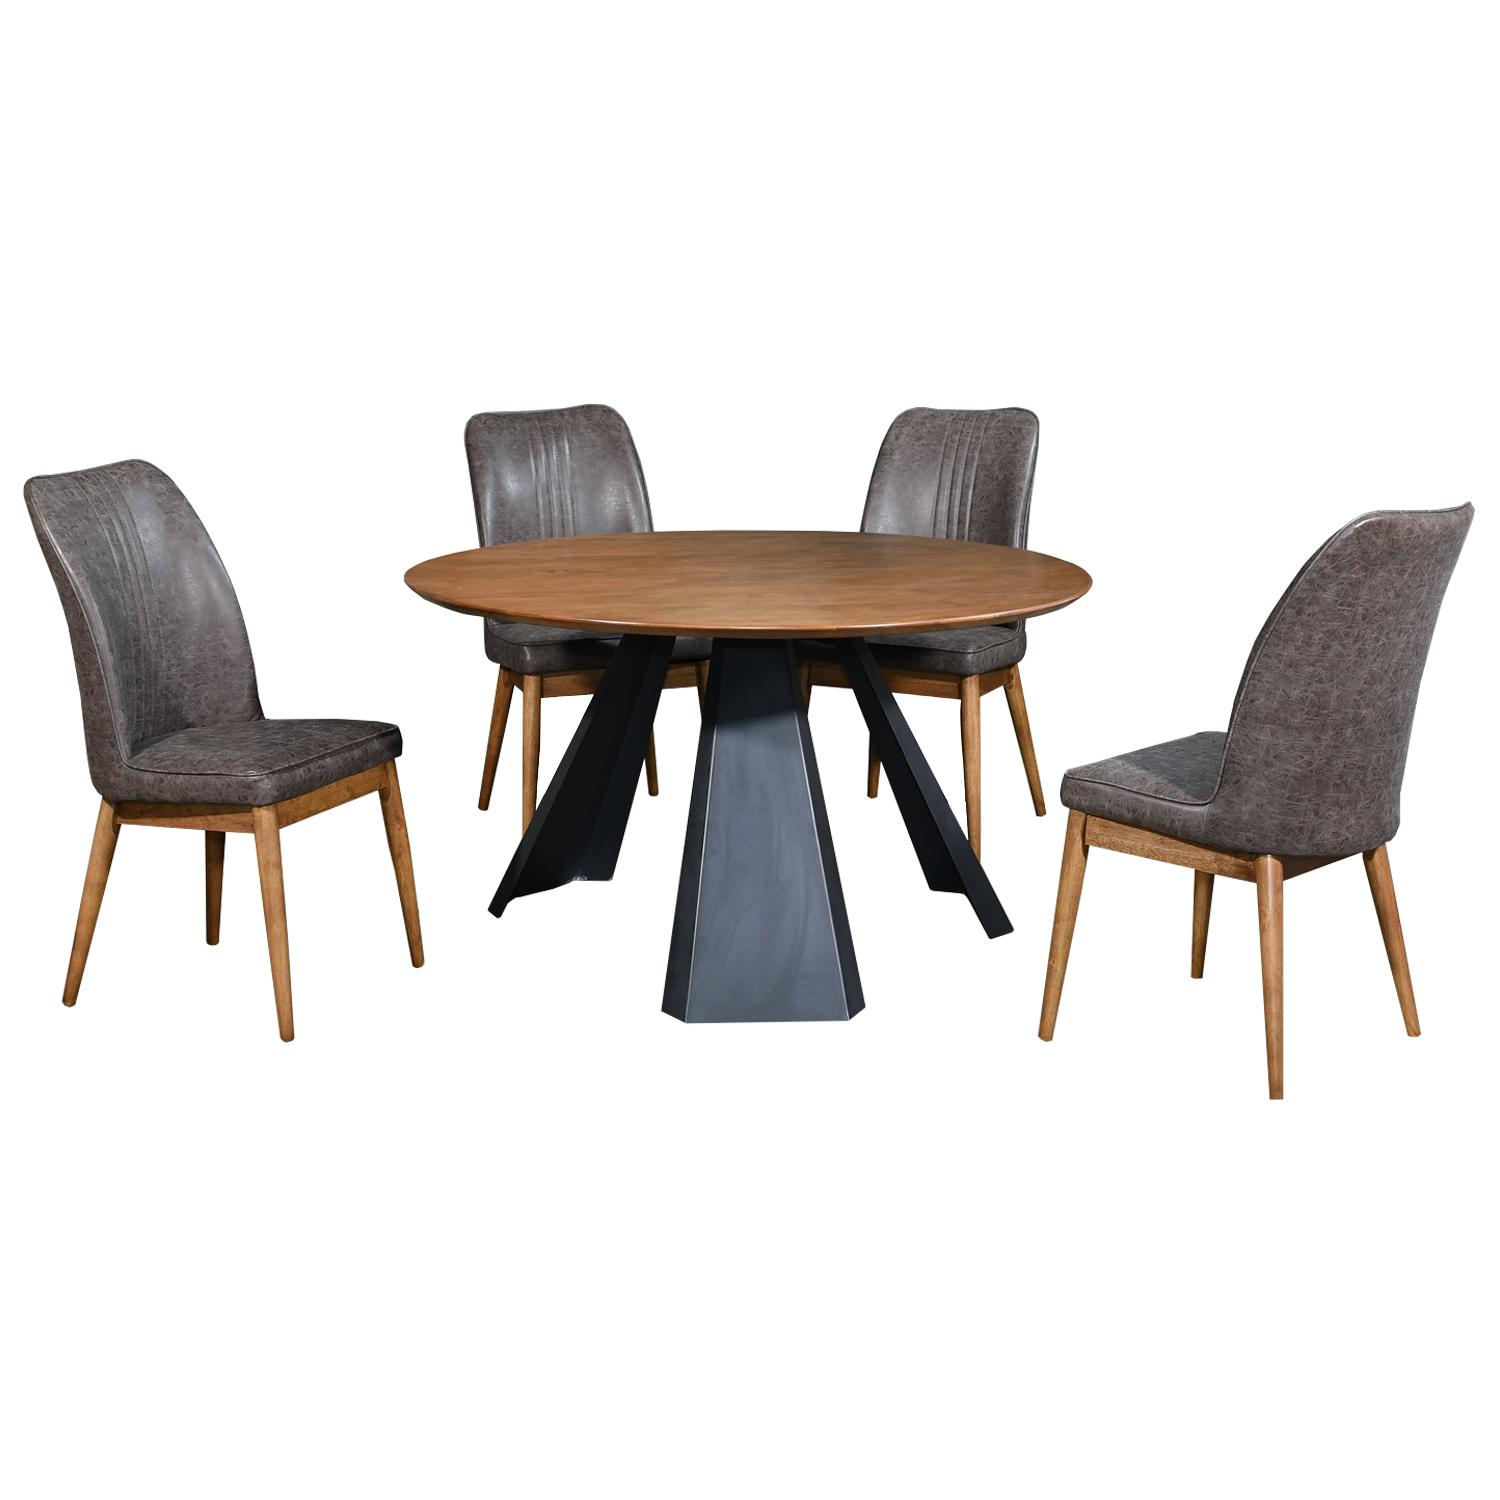 LIVING MALL_Fahim Dining Set 1+6_FREE DELIVERY